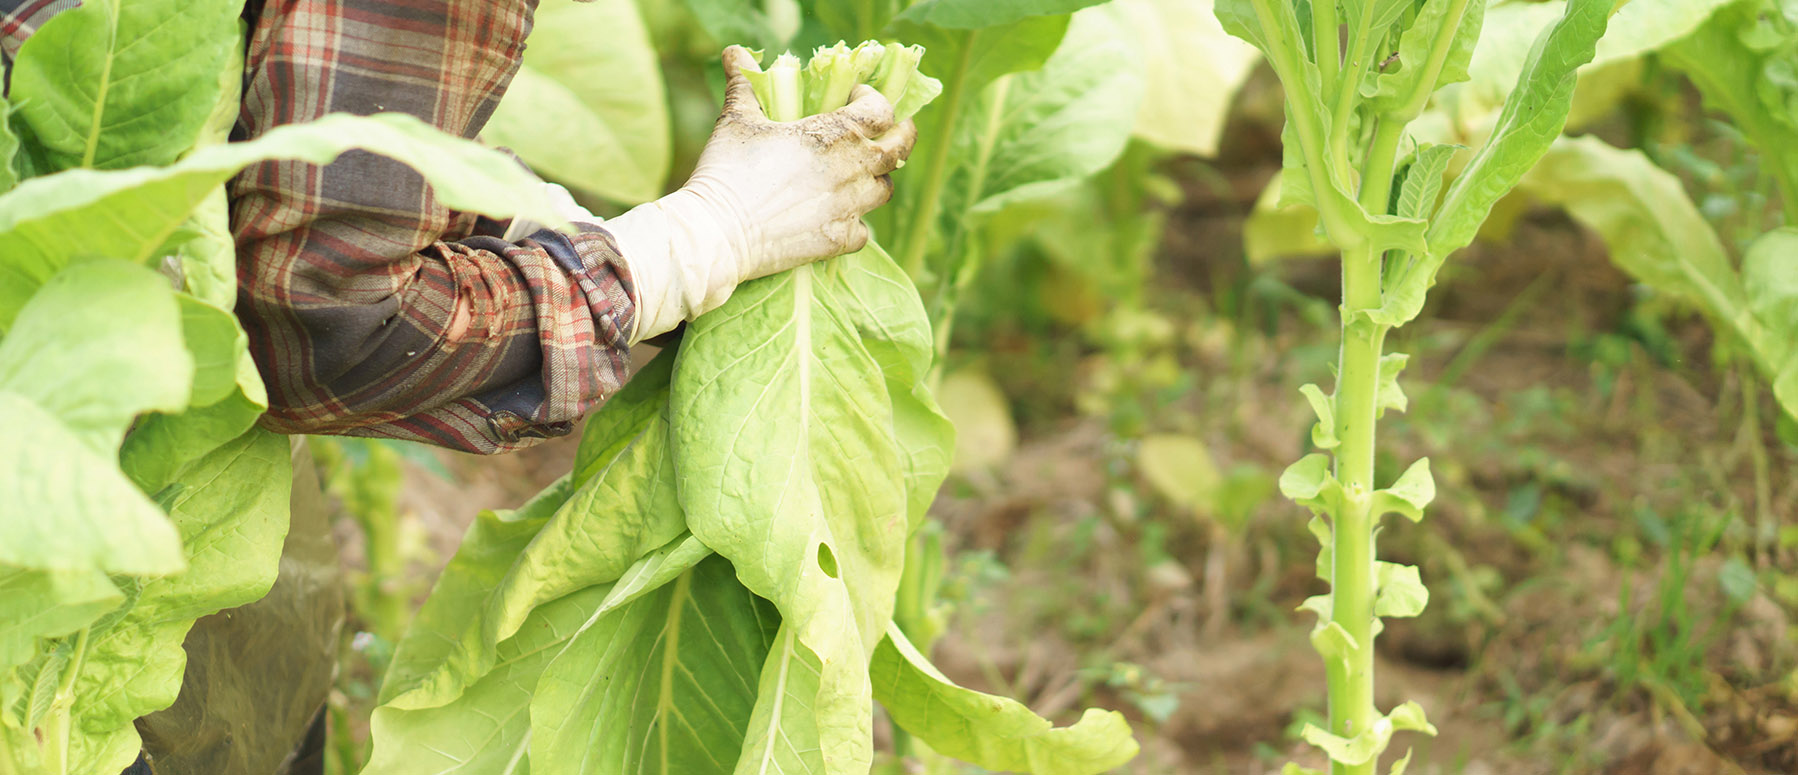 Farmer harvesting tobacco